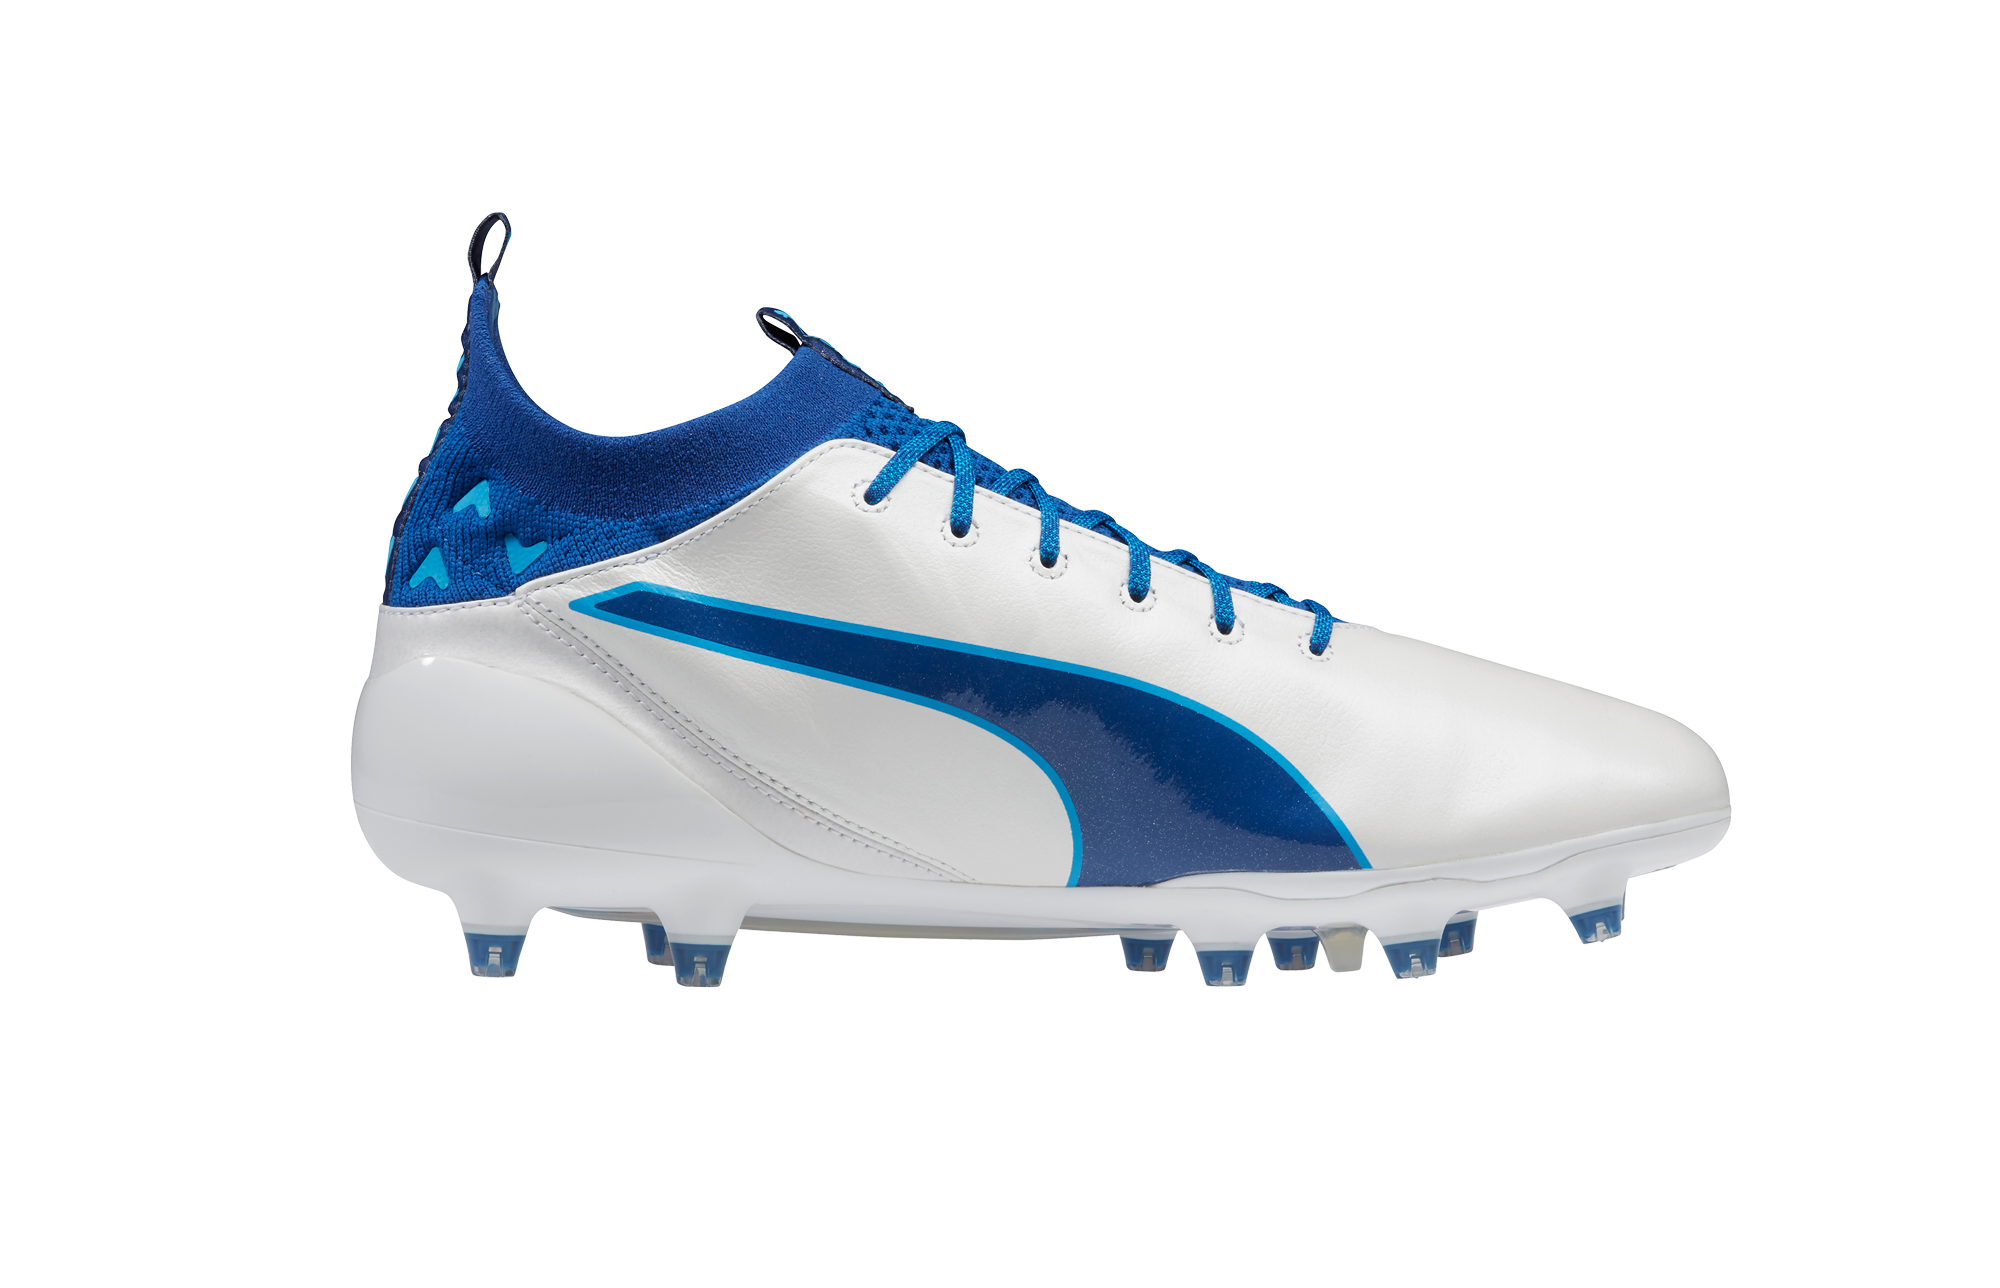 230204 puma%20unveils%20latest%20evotouch%20in%20striking%20new%20colourway environment product%20shot 2 65b4cf original 1479462758